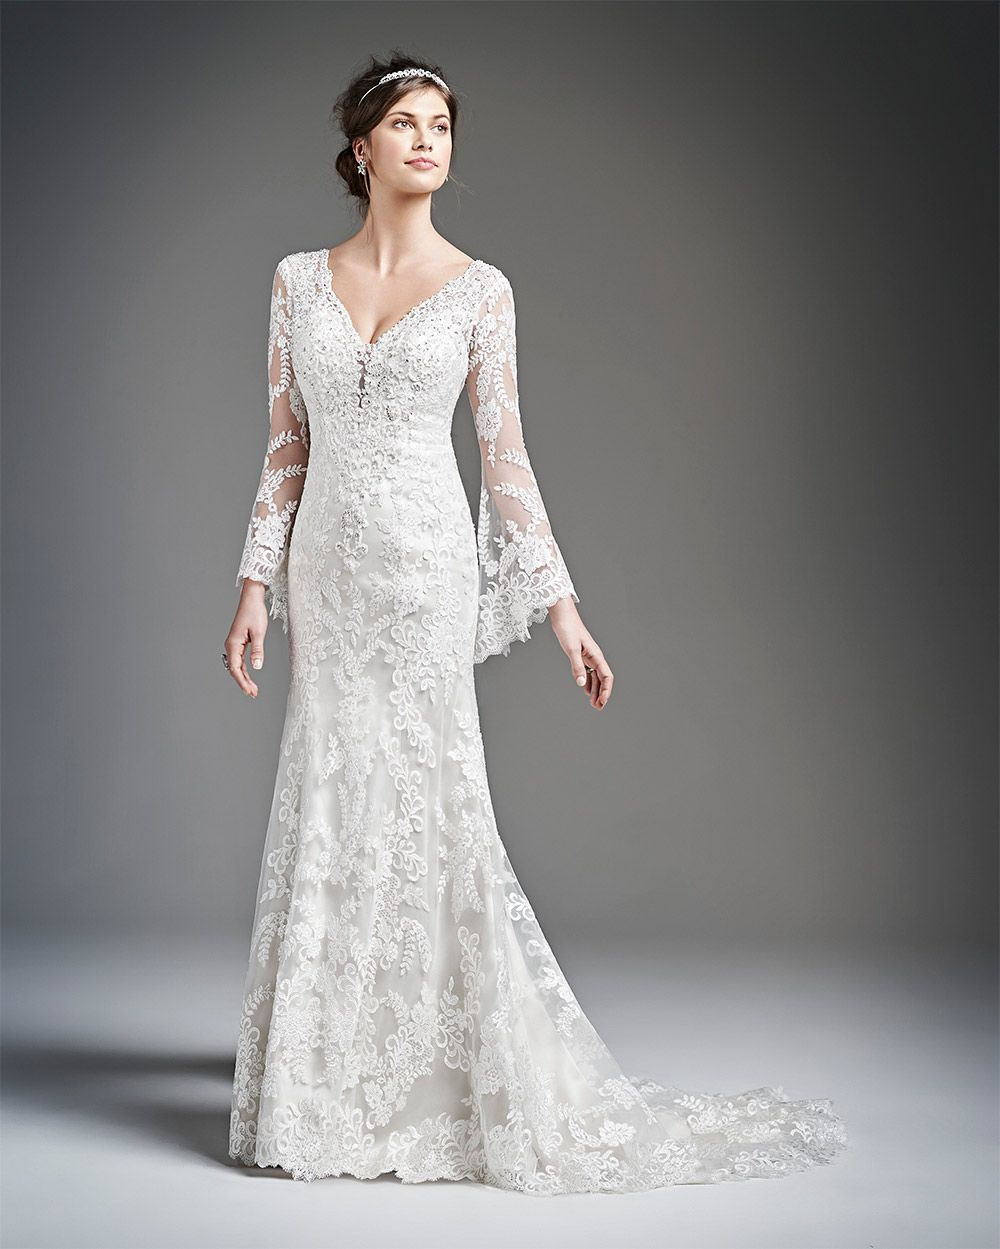 Bridal gowns for mature brides